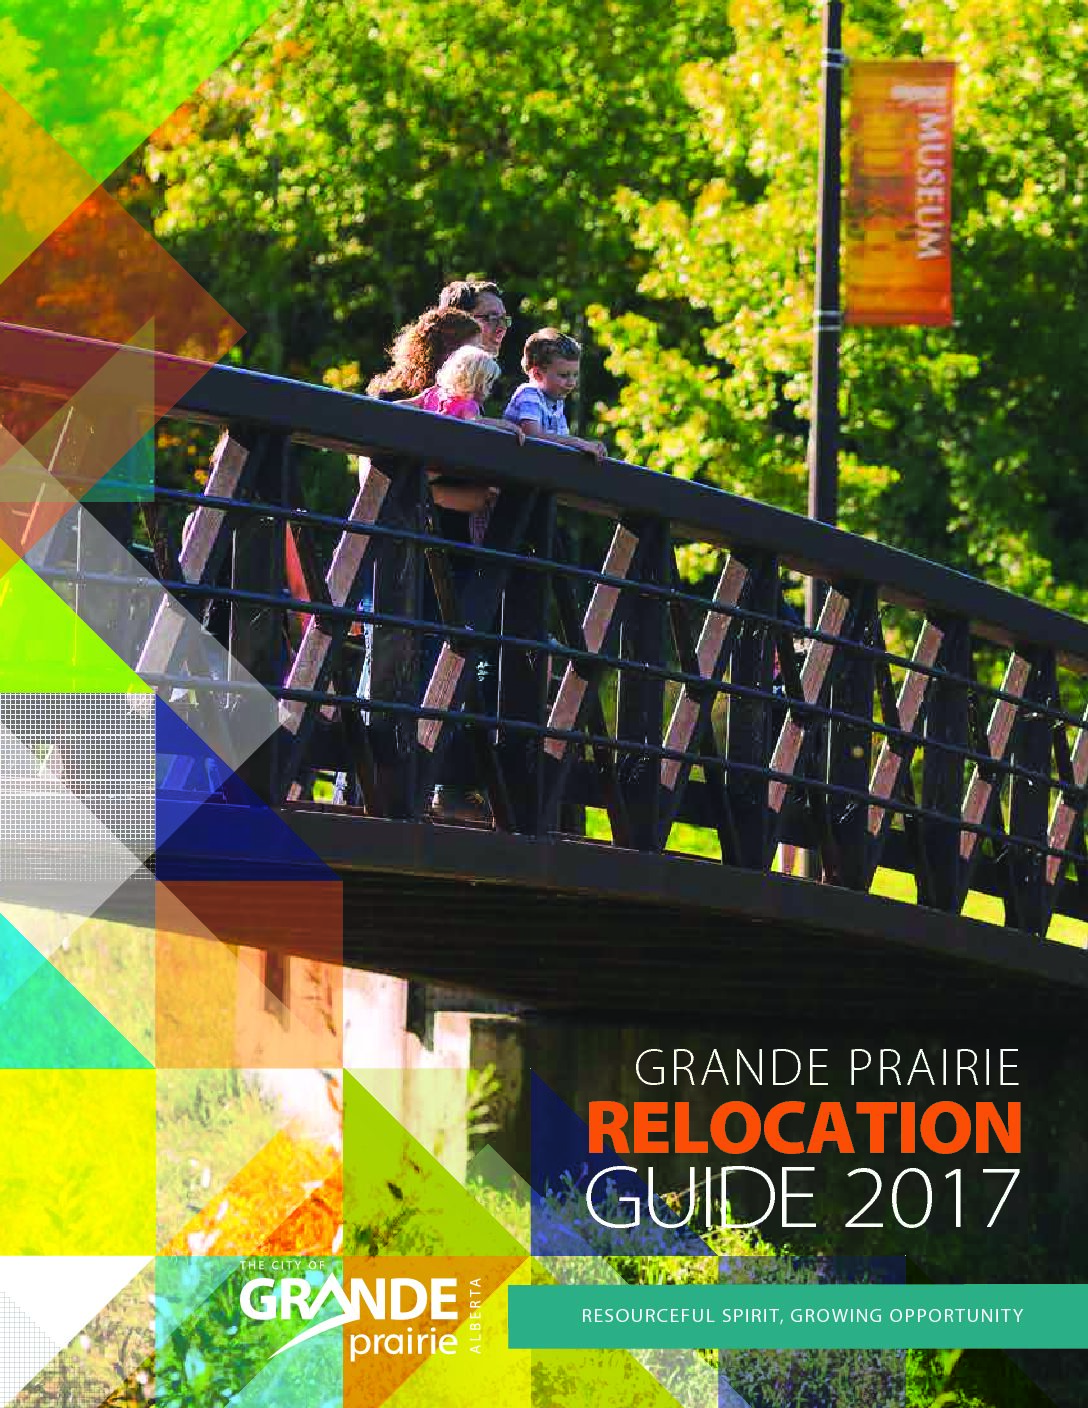 Grande Prairie – Relocation Guide 2017